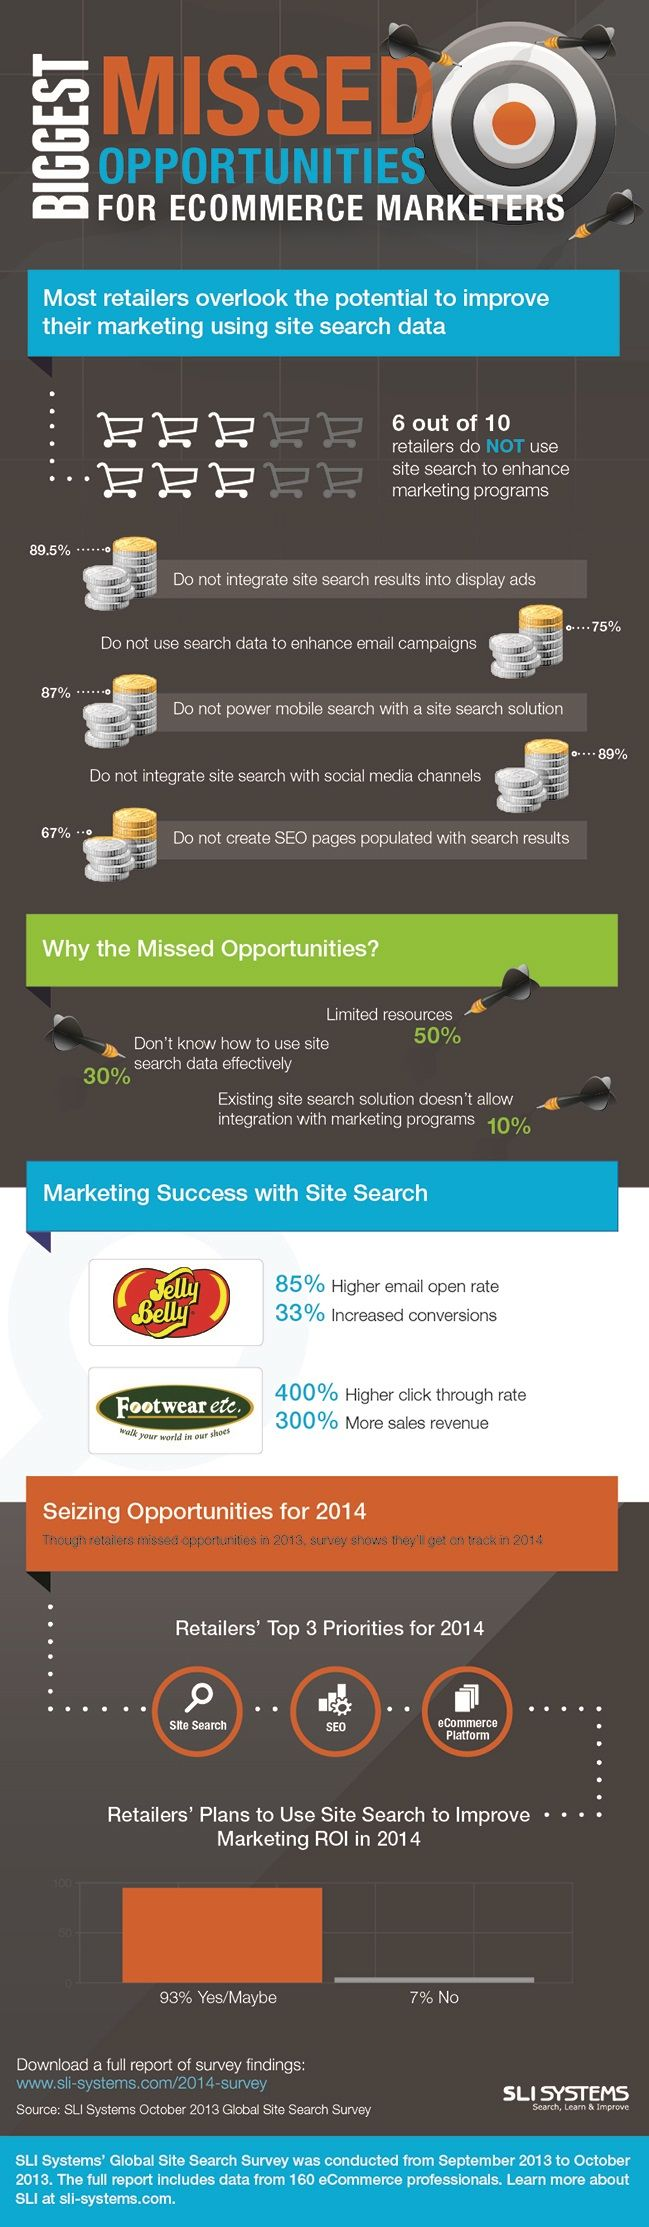 Search Engine Marketing - The Biggest Missed Opportunities in Site Search [Infographic] : MarketingProfs Article